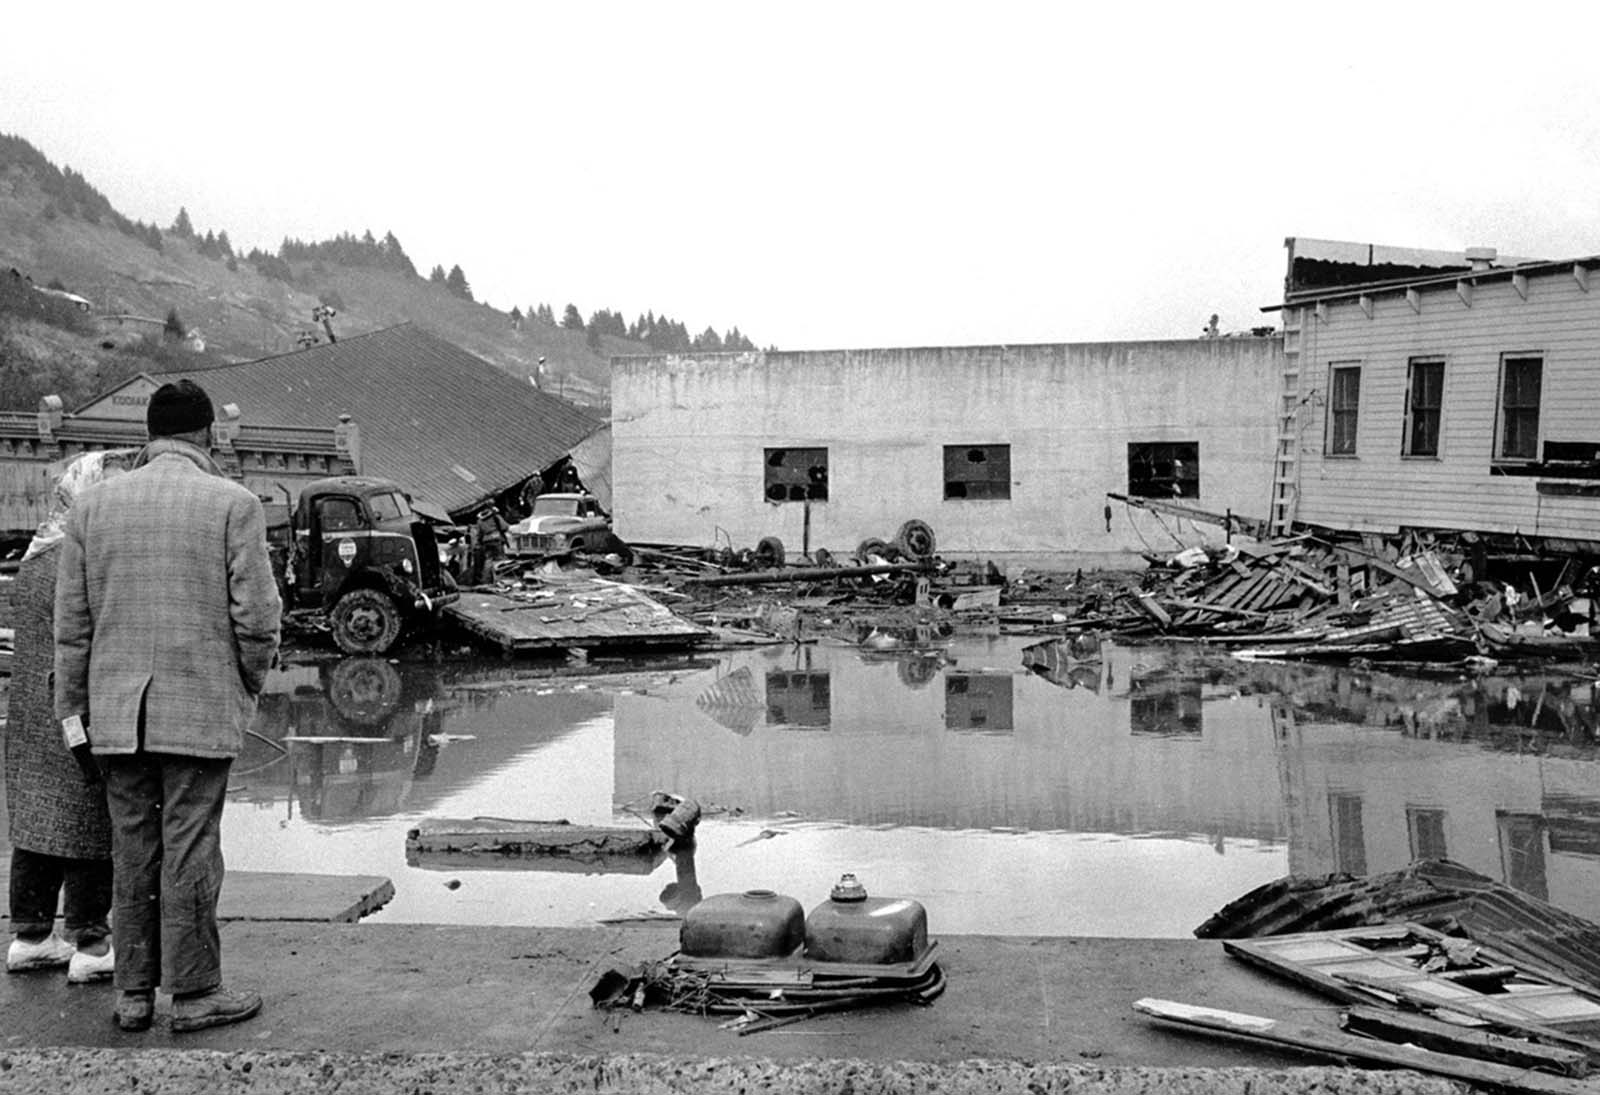 A forlorn couple stands on a concrete dock viewing the remains of the Kodiak waterfront on March 29, 1964.